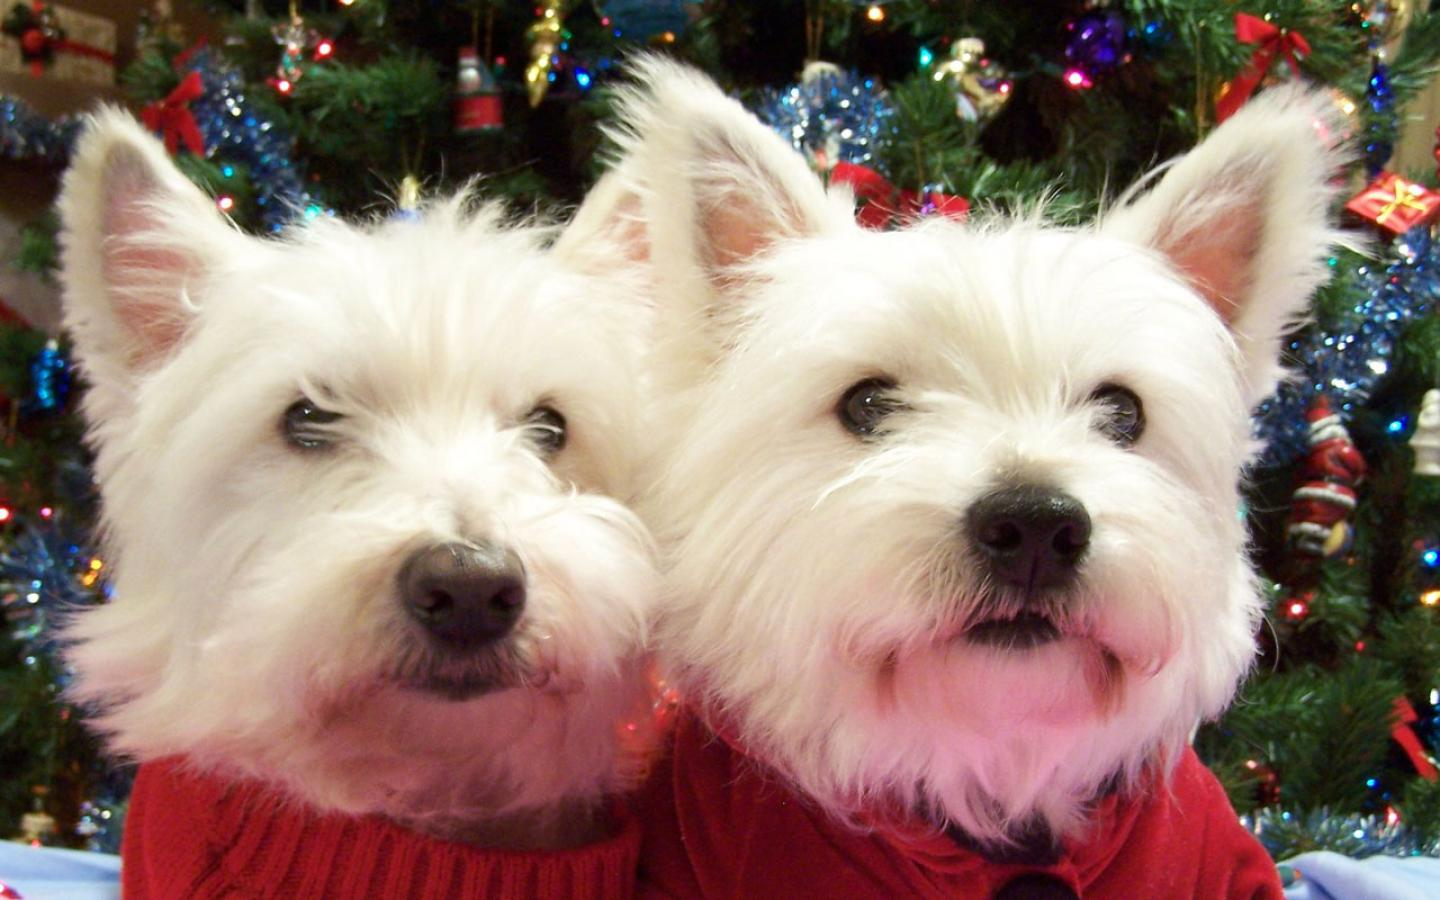 Two West Highland White Terrier dogs wallpaper